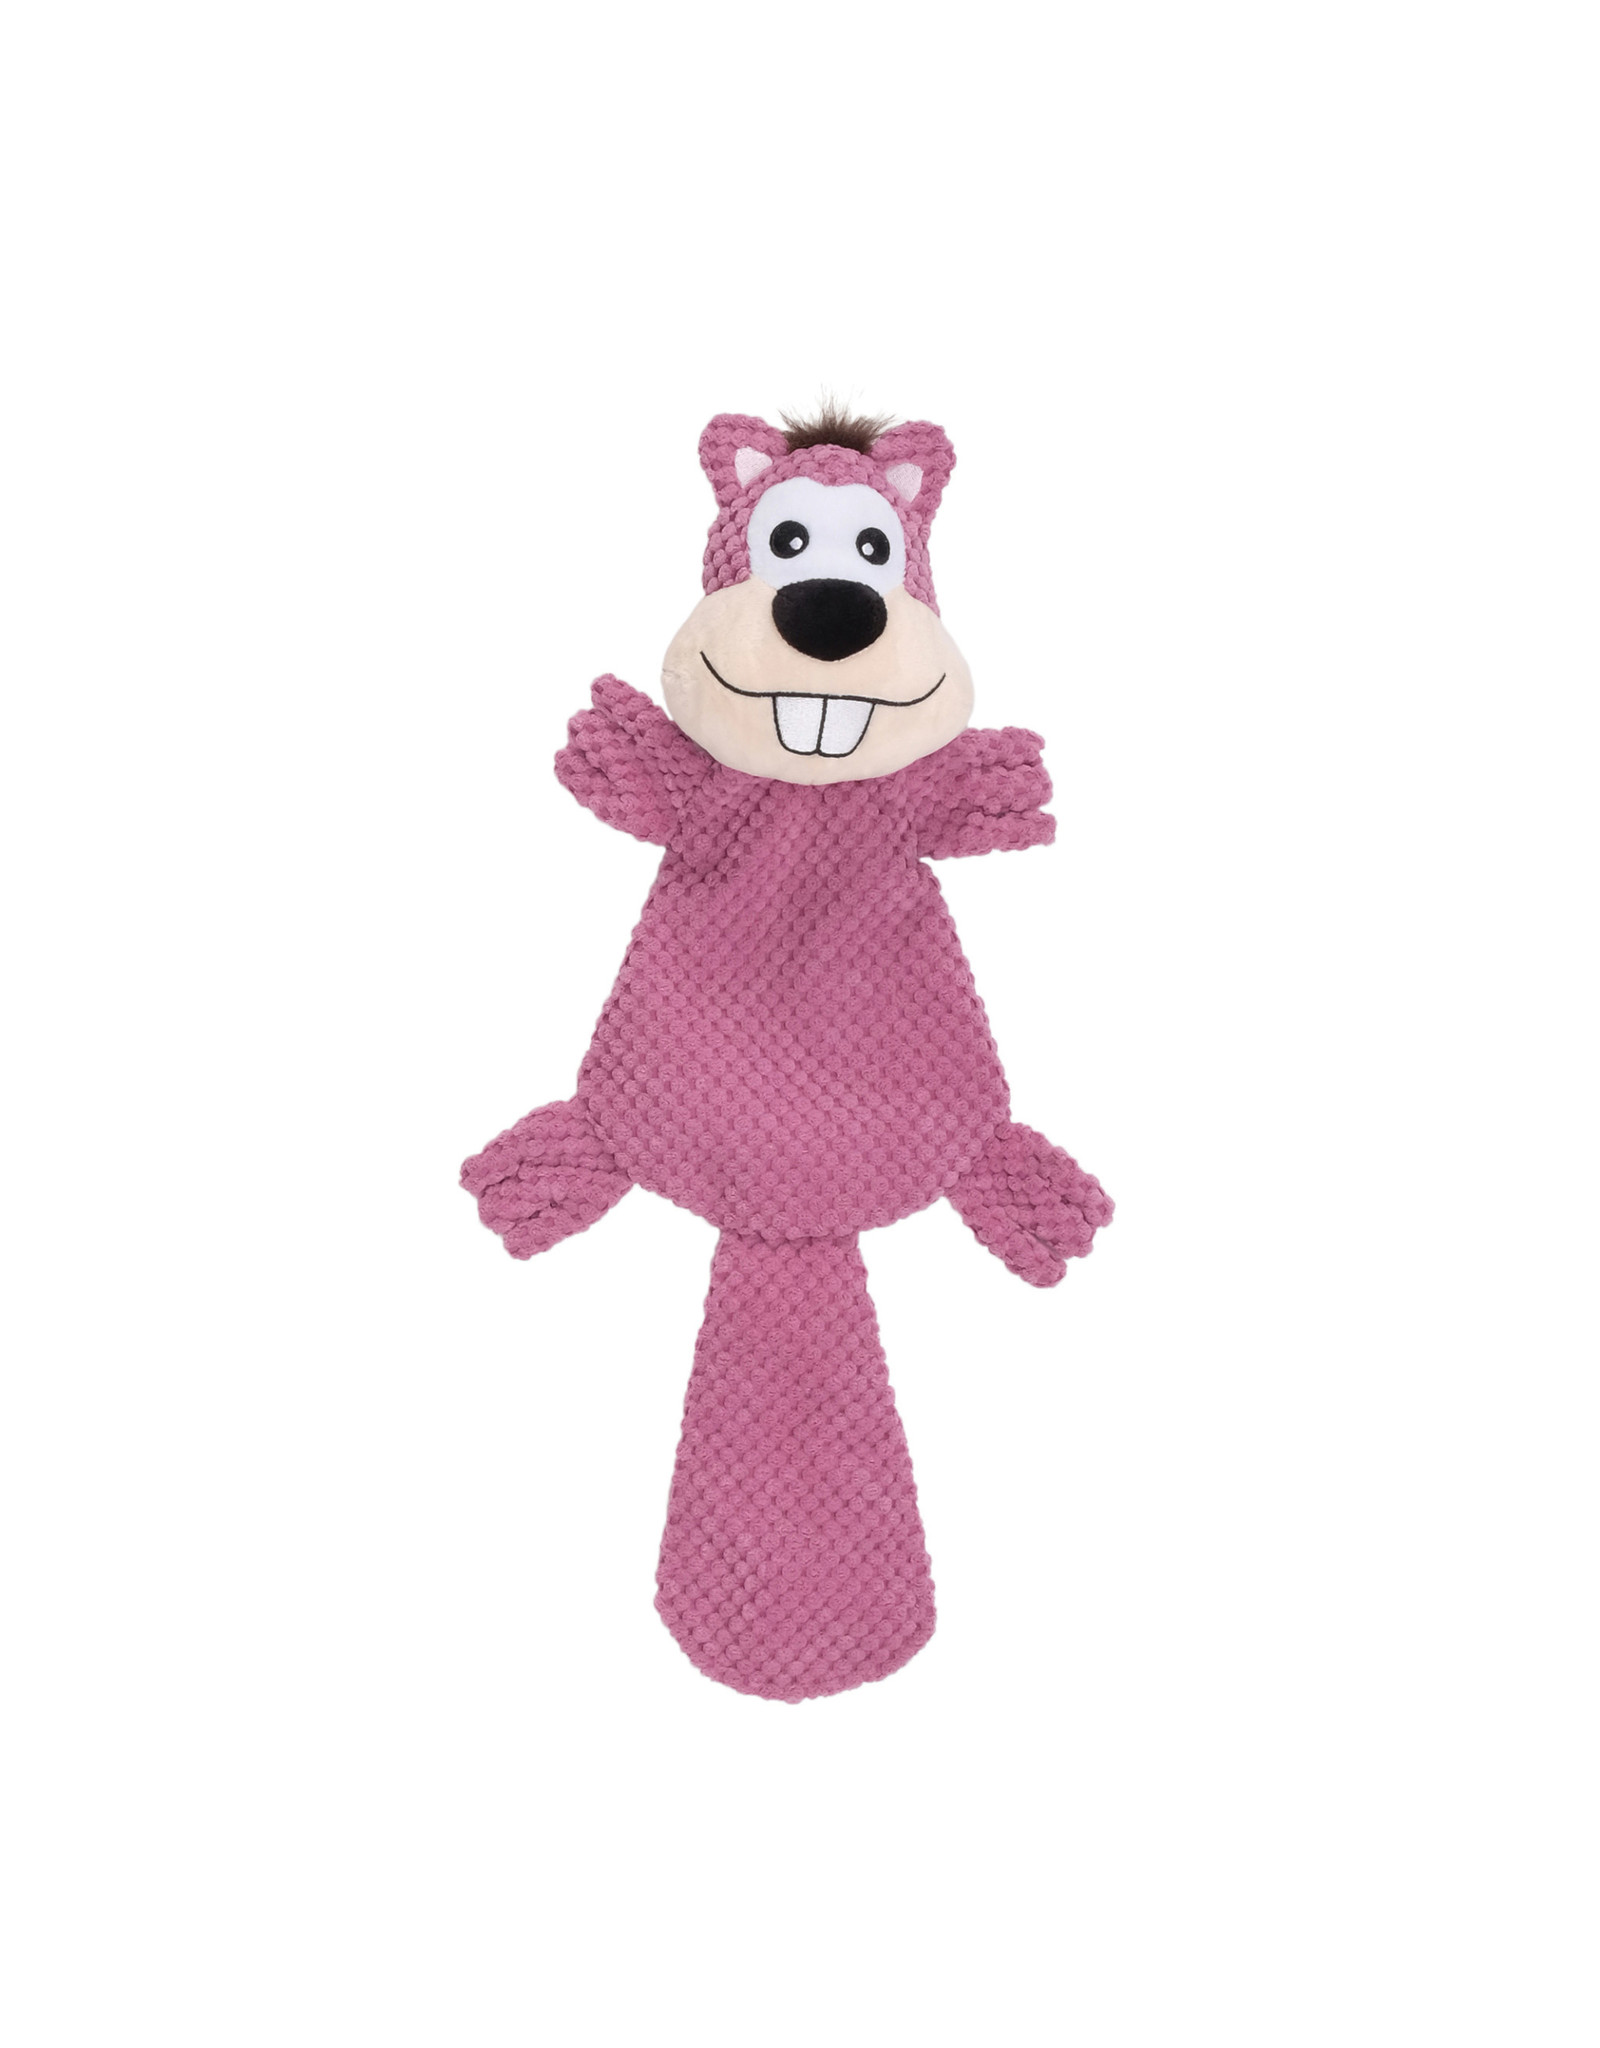 DO - Dogit Dogit Stuffies Dog Toy – XL Flat Friend - Beaver - 49 cm (19.5 in)